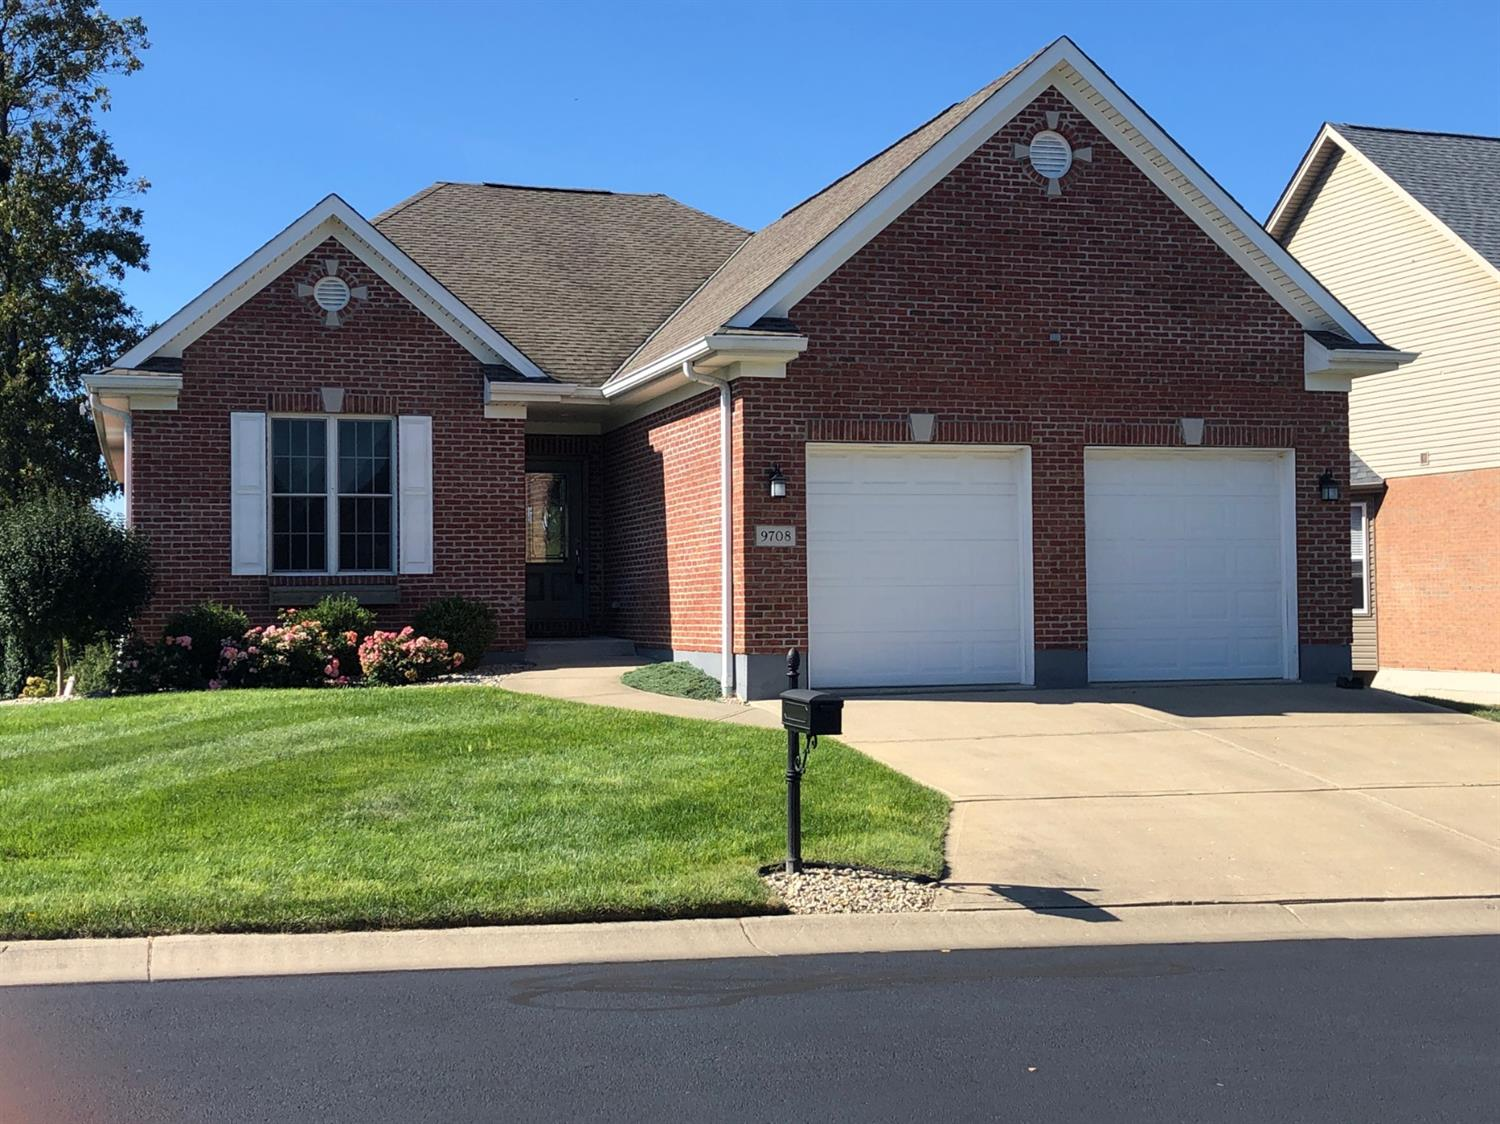 9708 Pebble View Dr Colerain Twp.West, OH